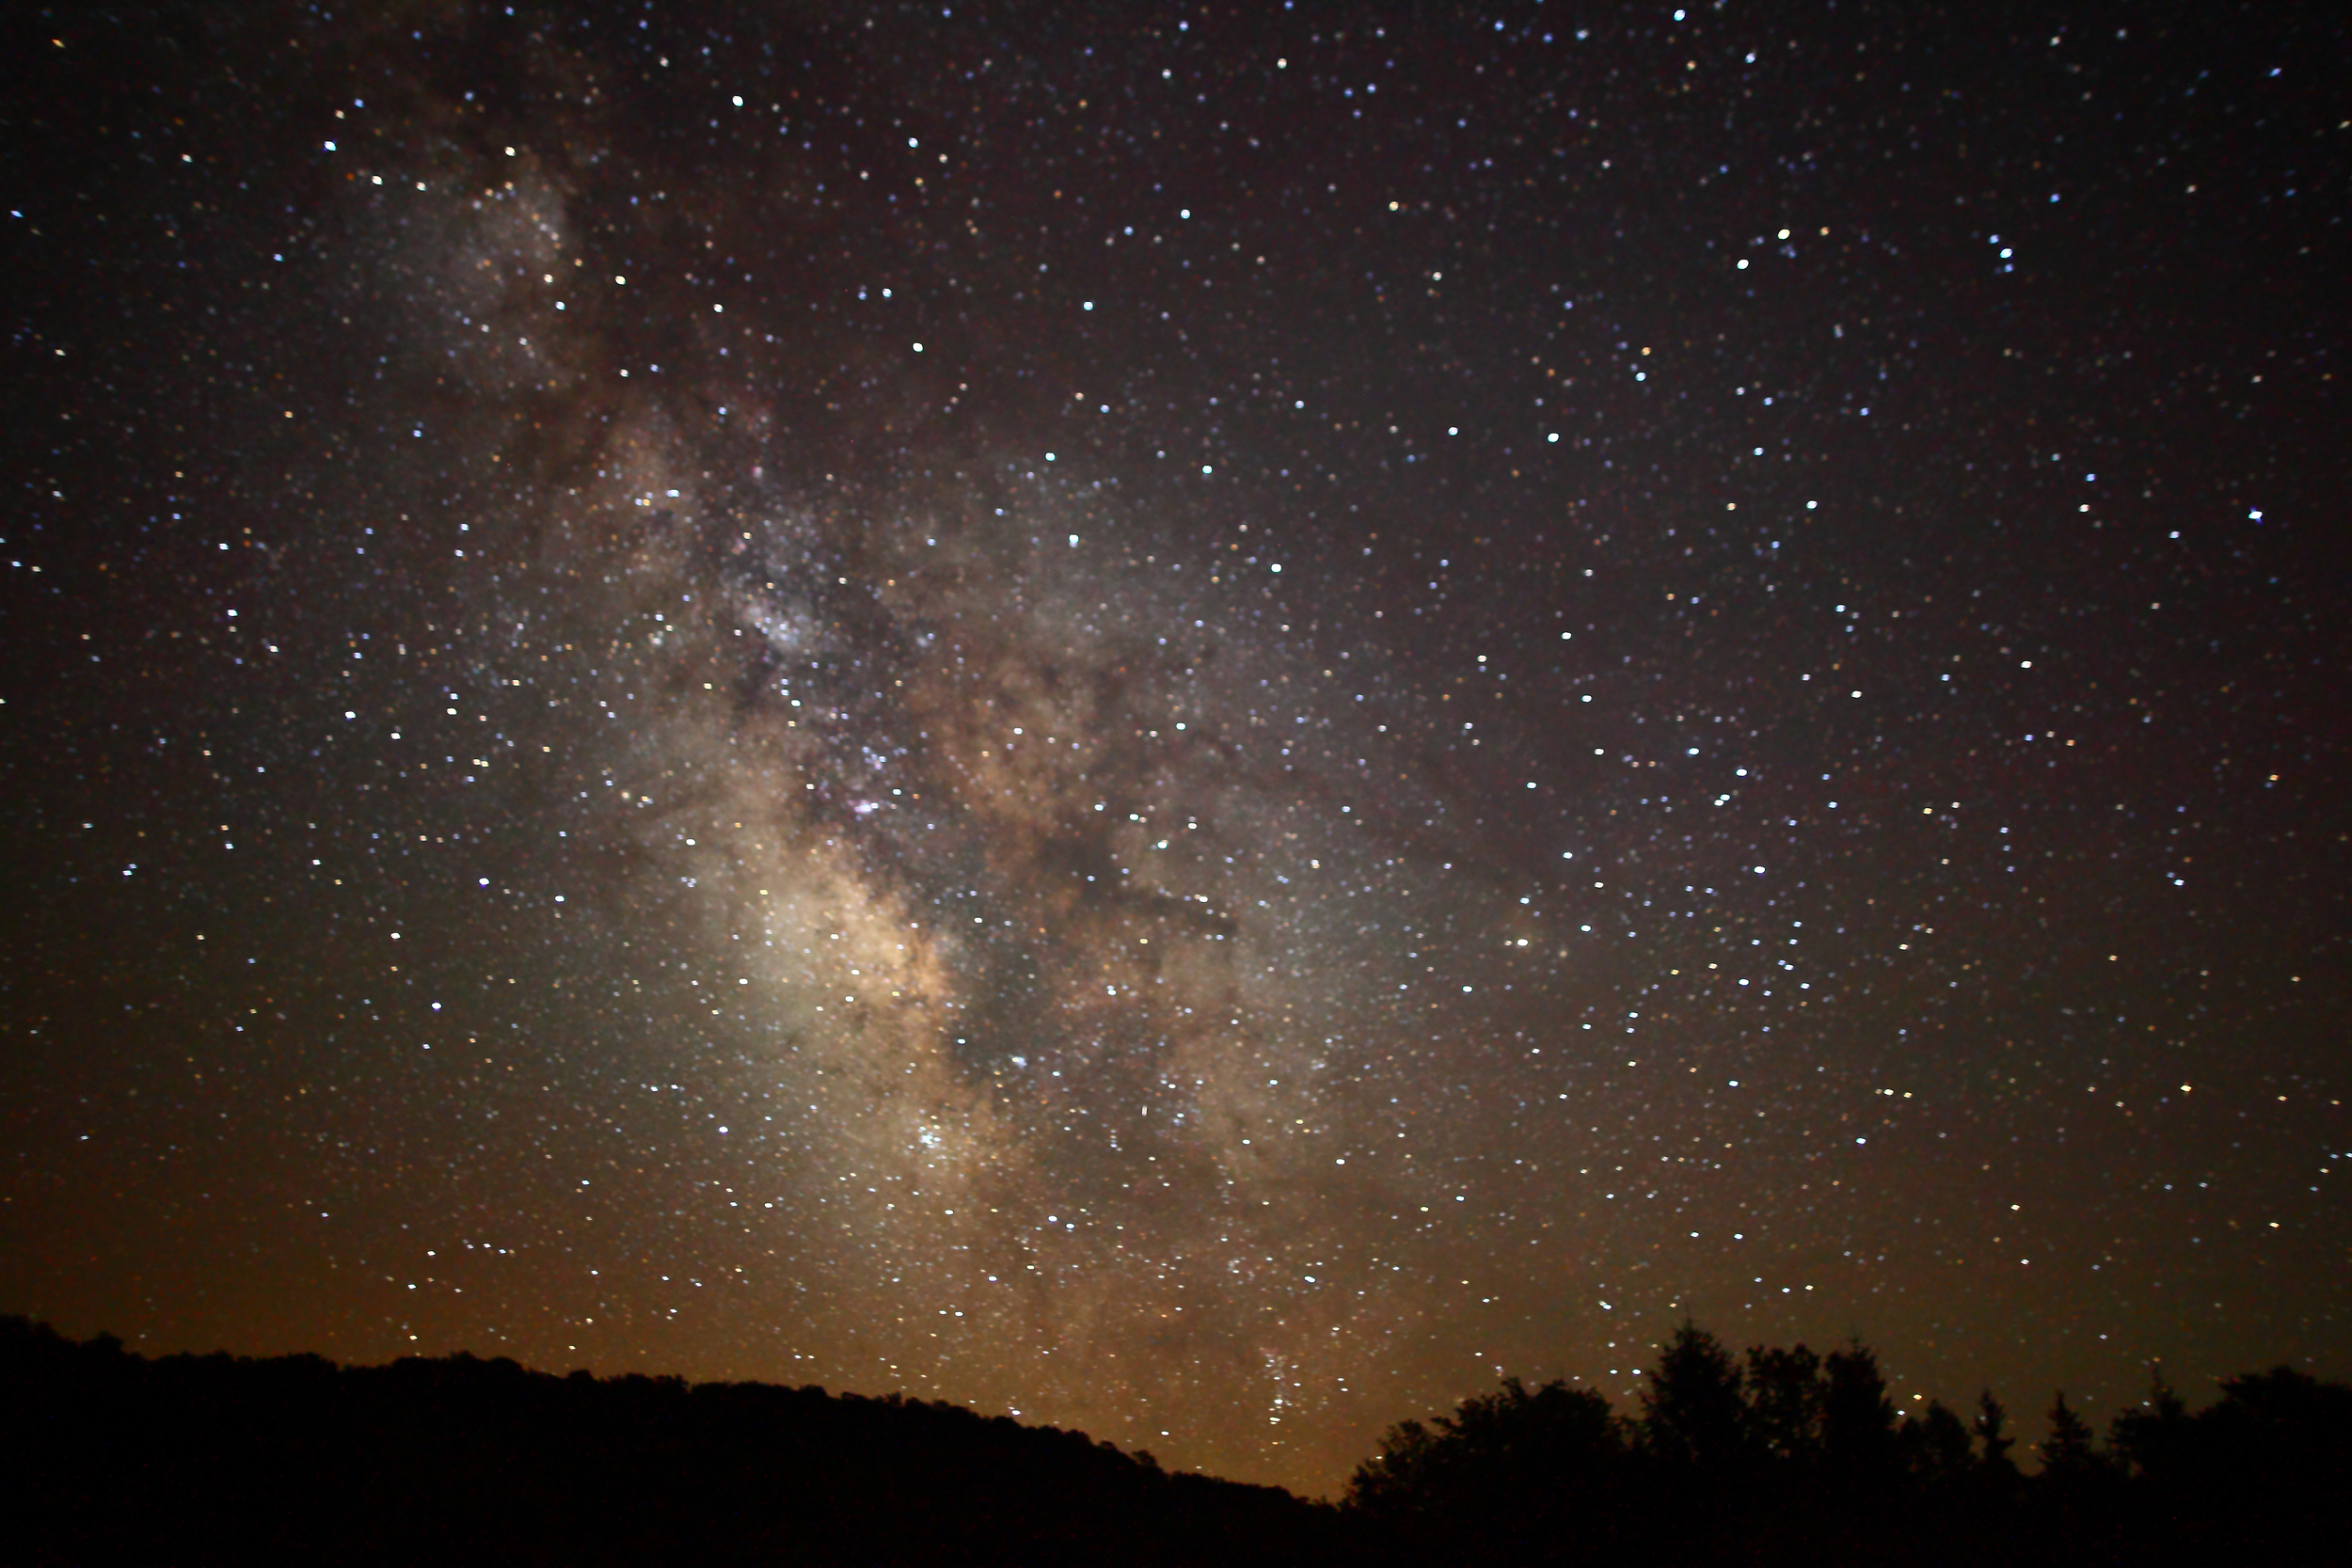 Center_of_the_Milky_Way_Galaxy_from_the_mountains_of_West_Virginia_-_4th_of_July_2010.jpg